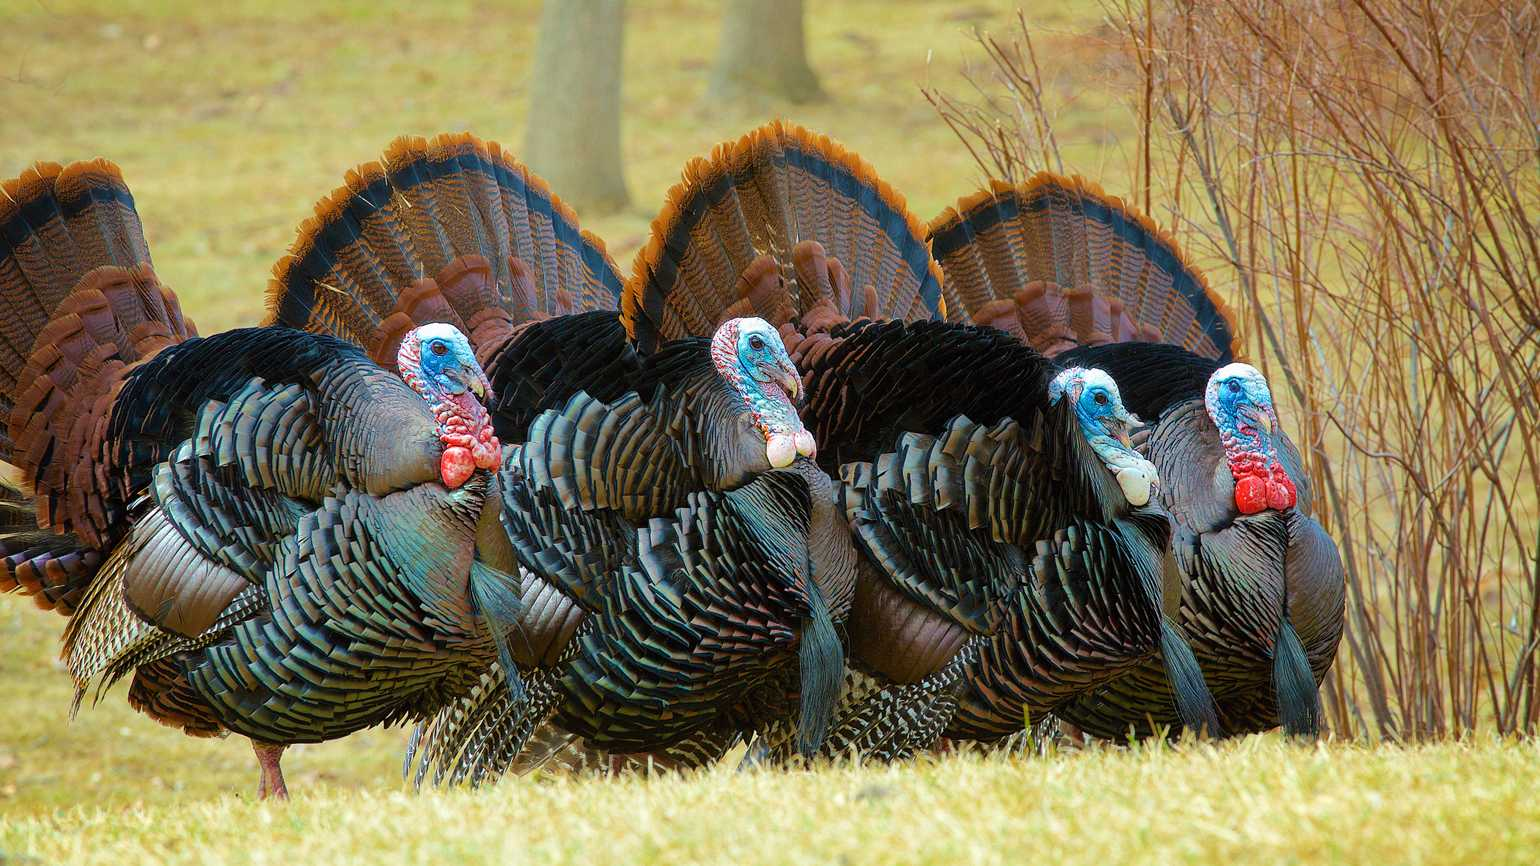 A flock of four turkeys in a row with their tail feathers fully spread